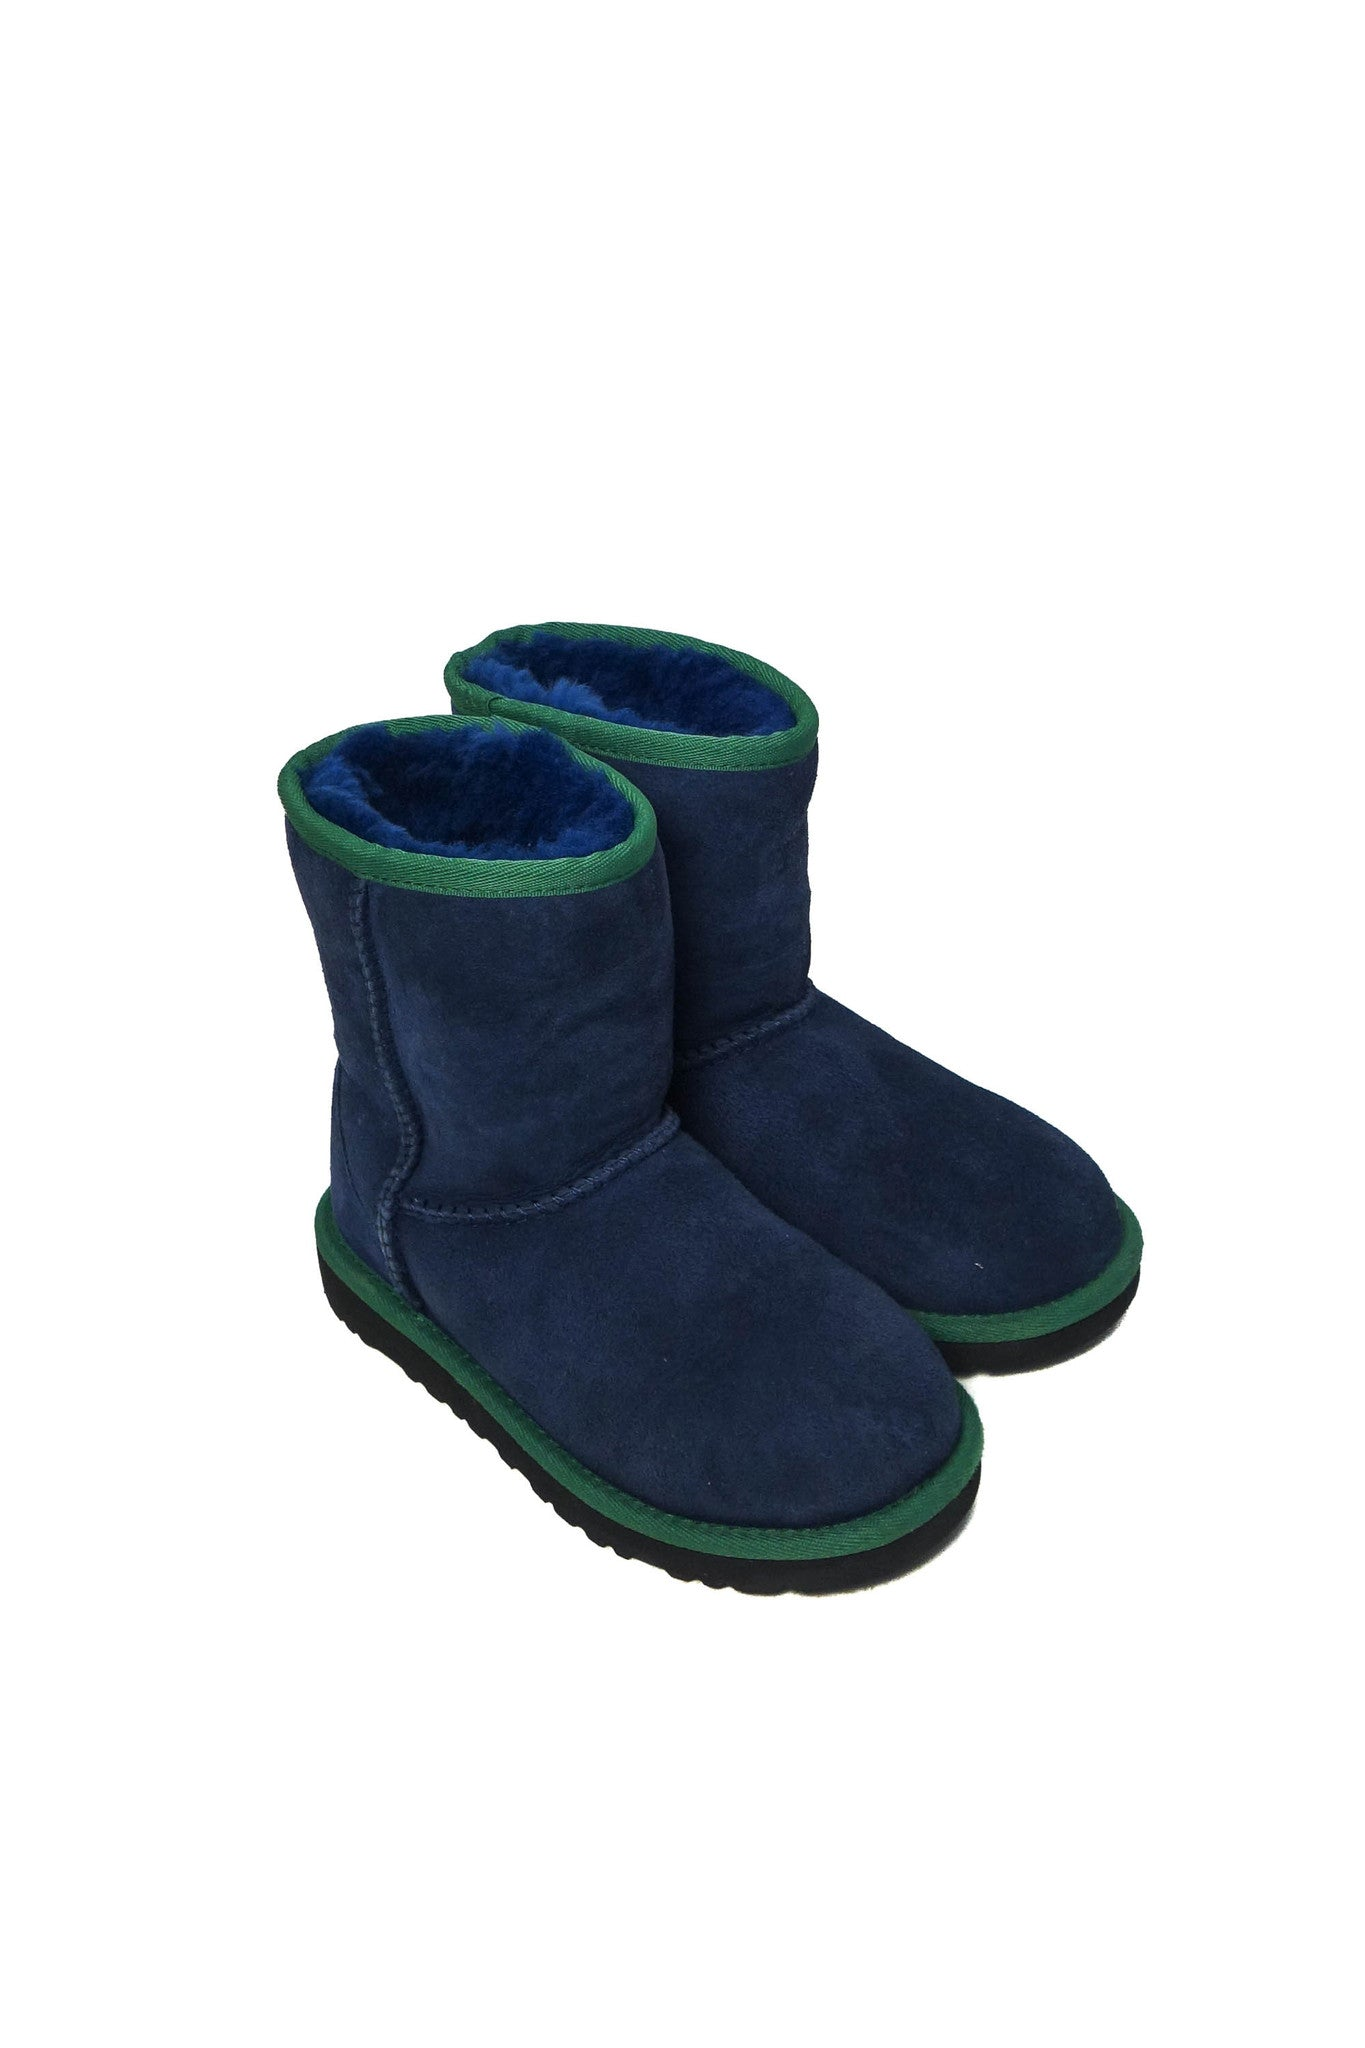 10003018 UGG Kids~Boots 6T (US 13) at Retykle